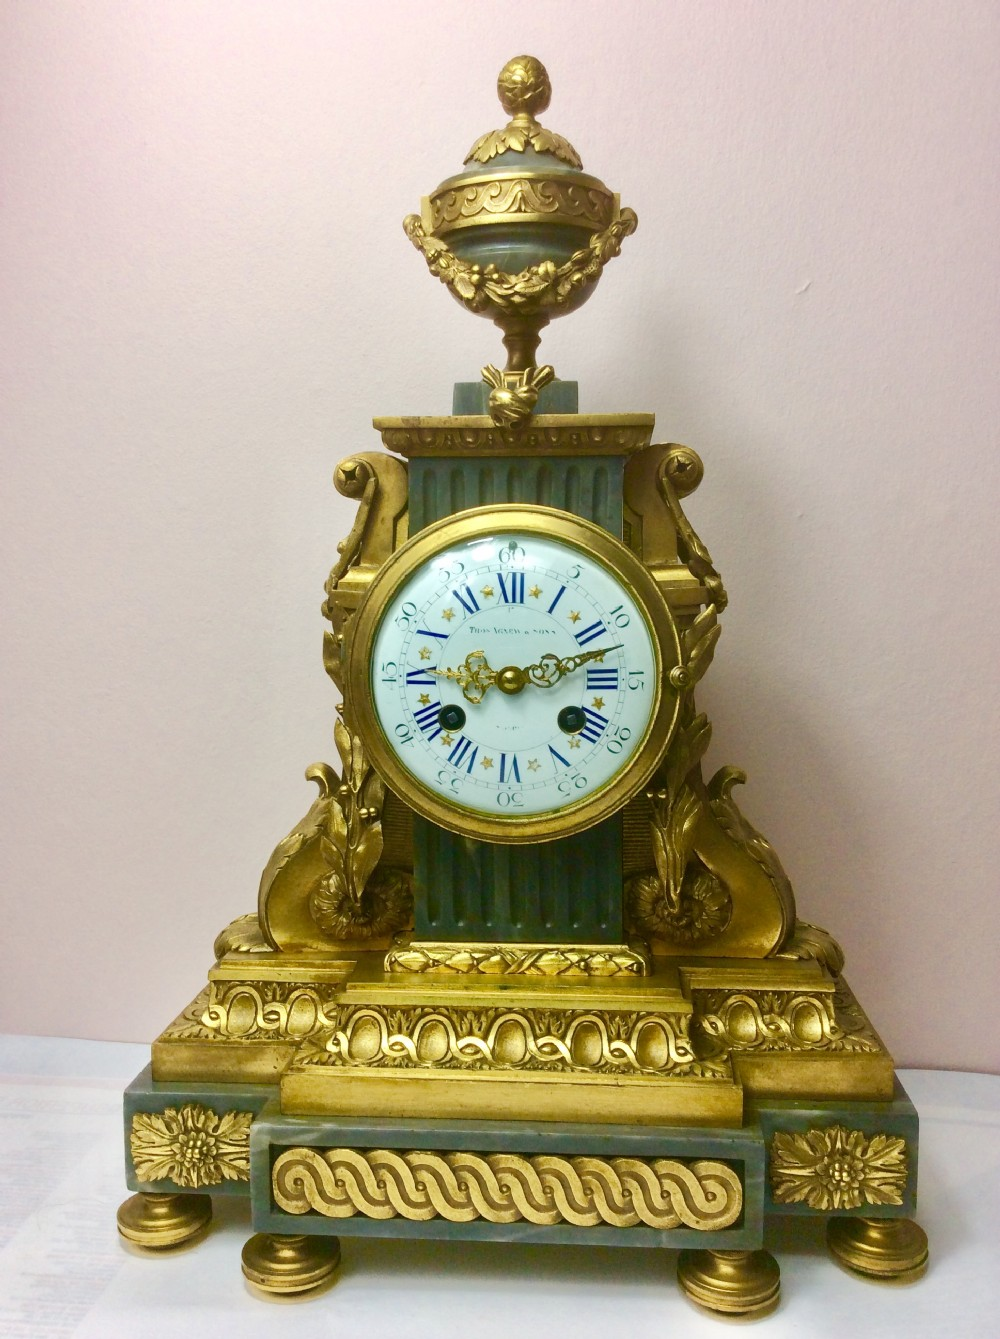 fabulous charpentier foundry gilt ormolu cased 8 day french striking clock made specially for thos agnew sons